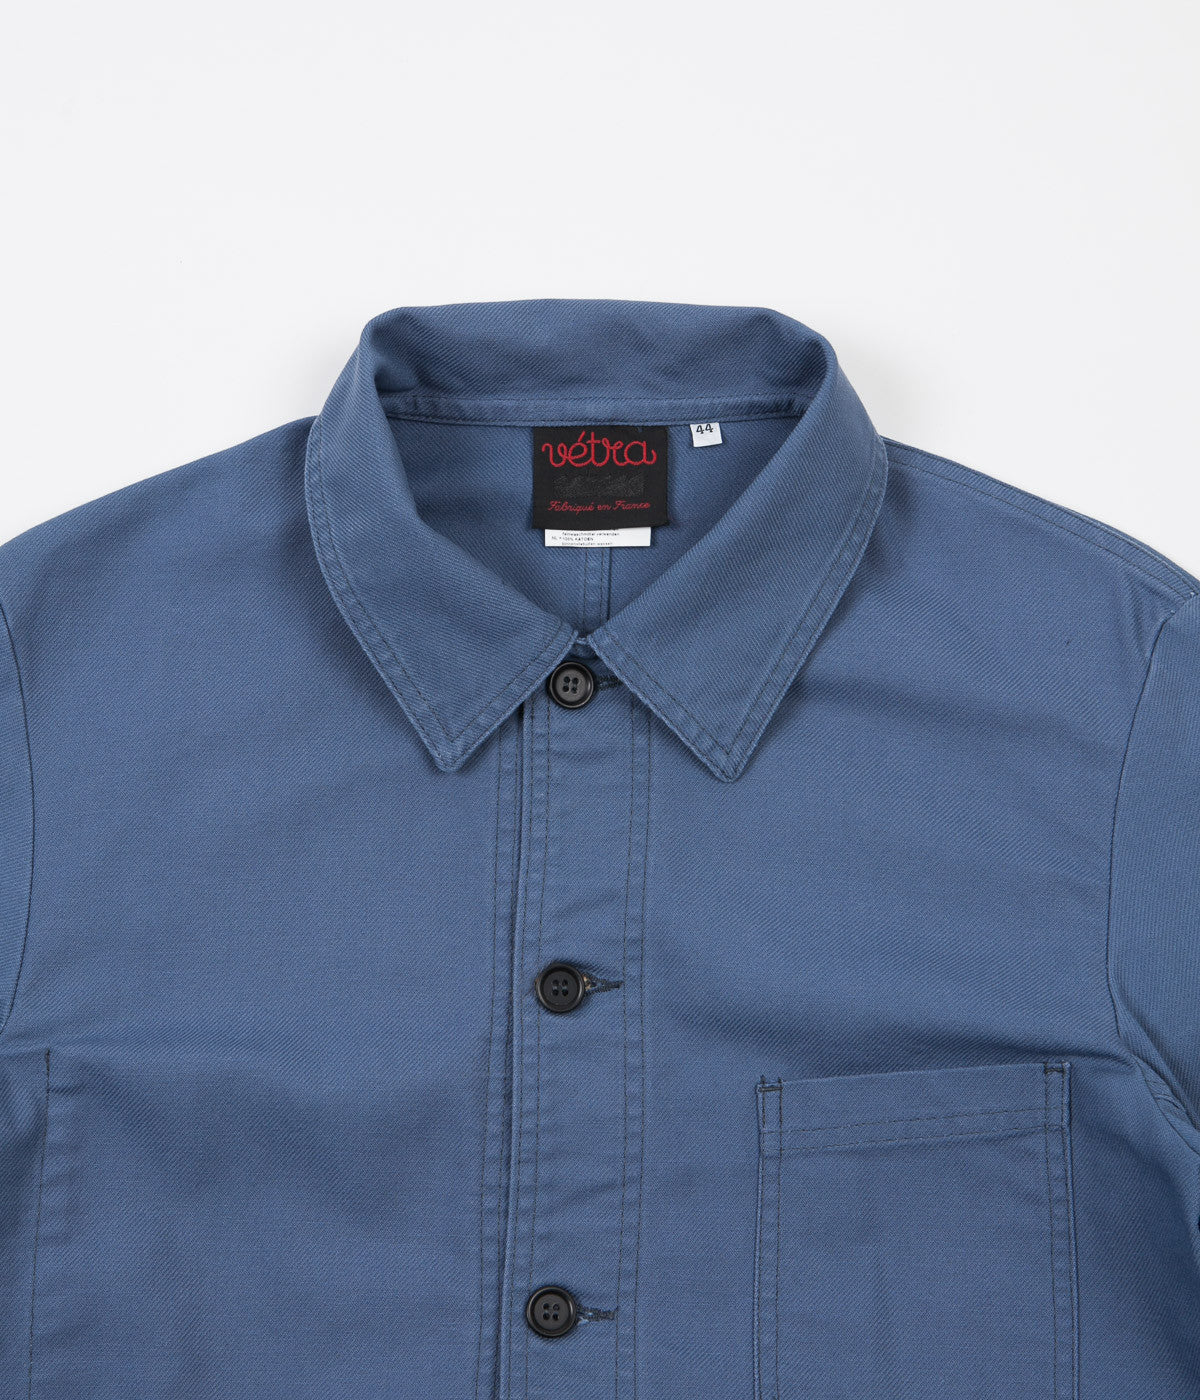 Vetra No.4 Workwear Jacket - Postman